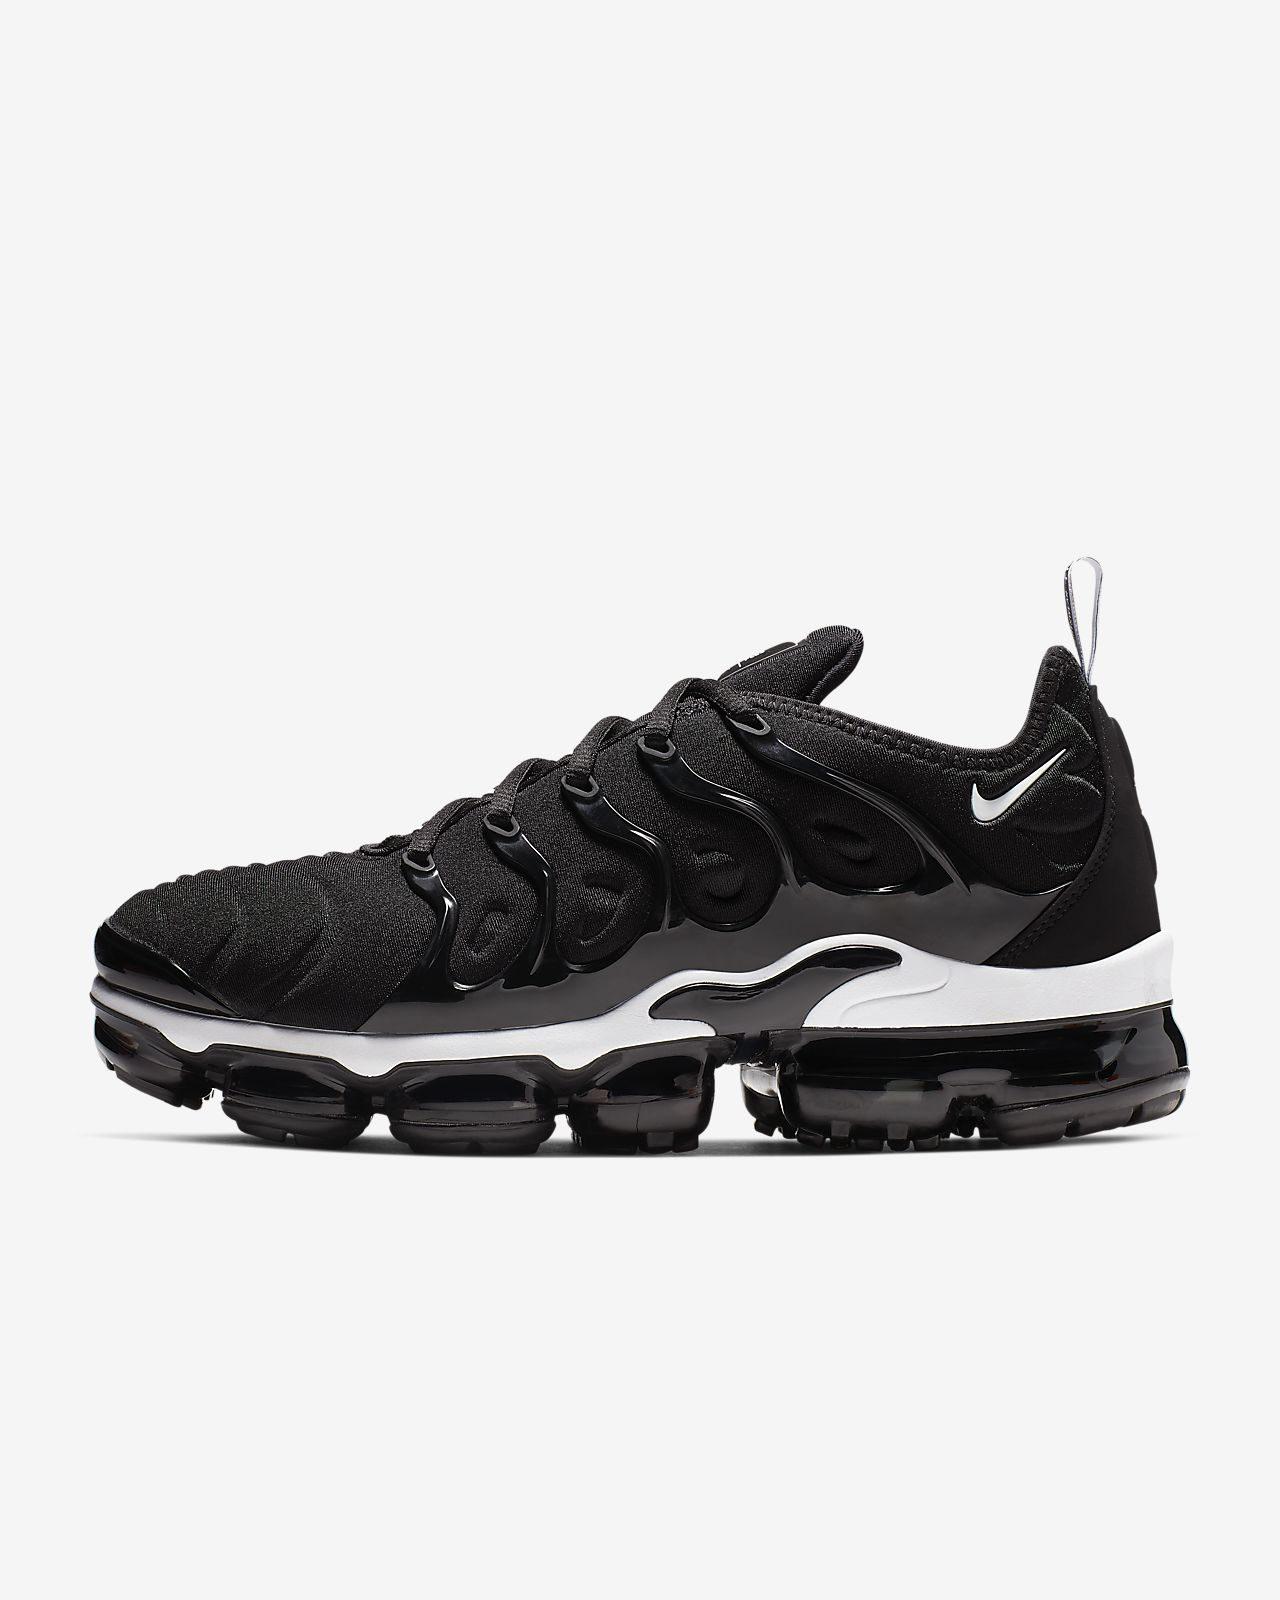 0789757a068 Nike Air VaporMax Plus Men s Shoe. Nike.com GB